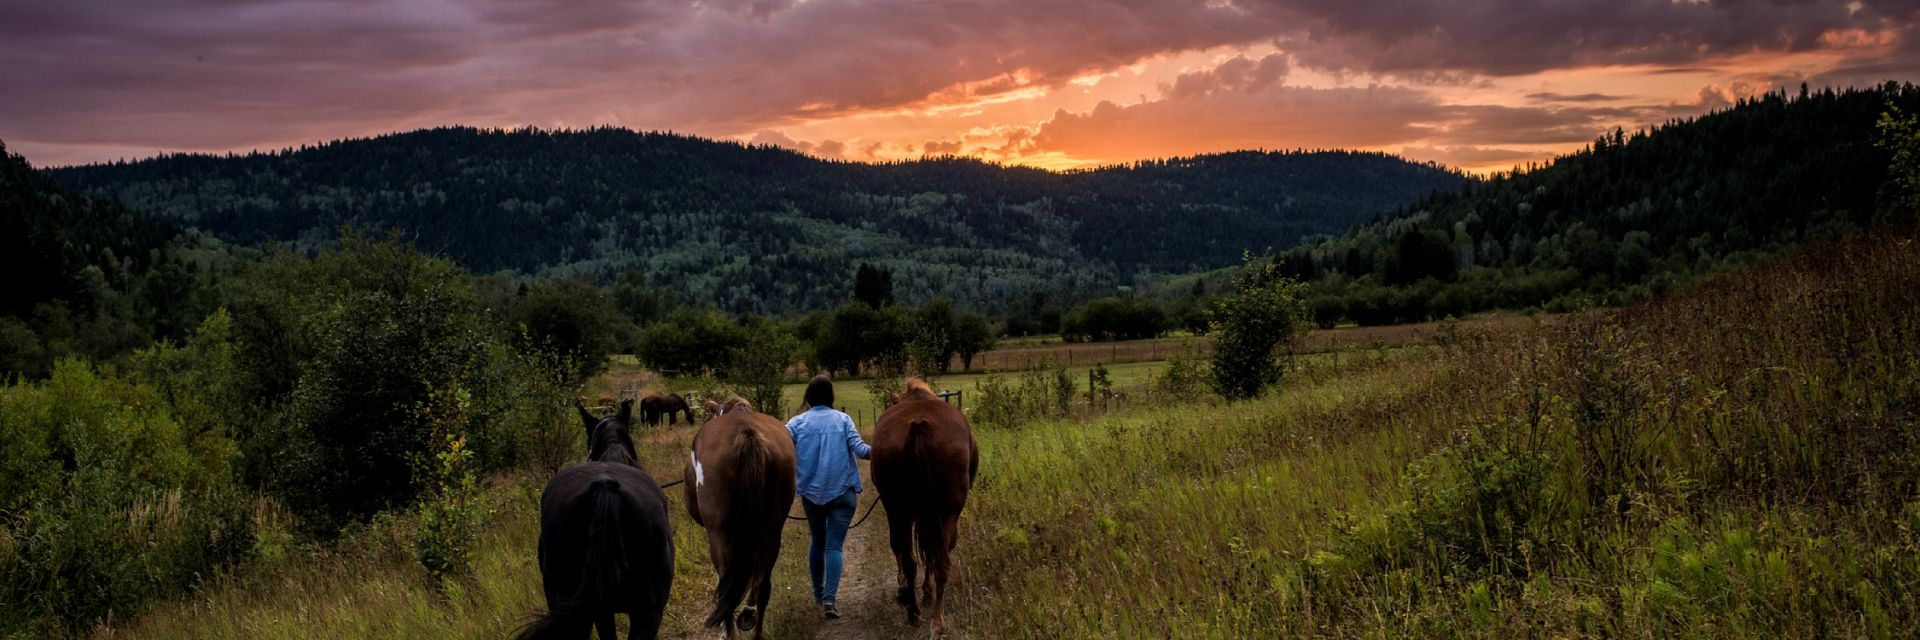 sunset horsback ride at Kayanara guest ranch, Eagle Creek, british columbia.